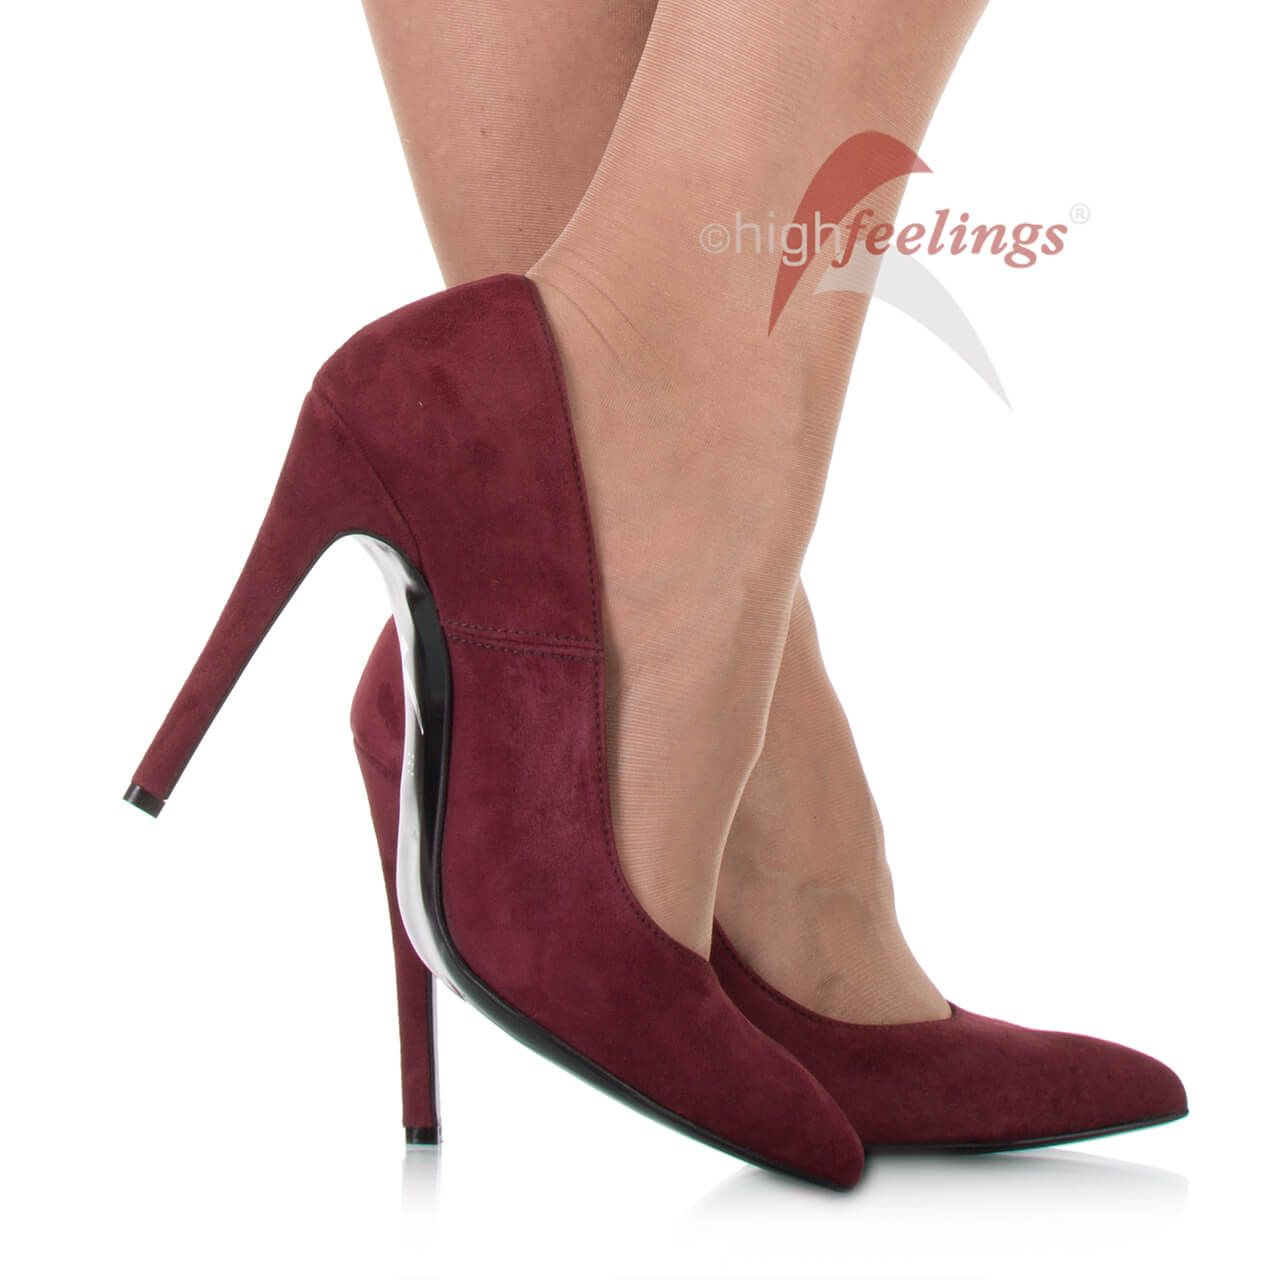 Pumps Weinrot Veloursleder | high feelings